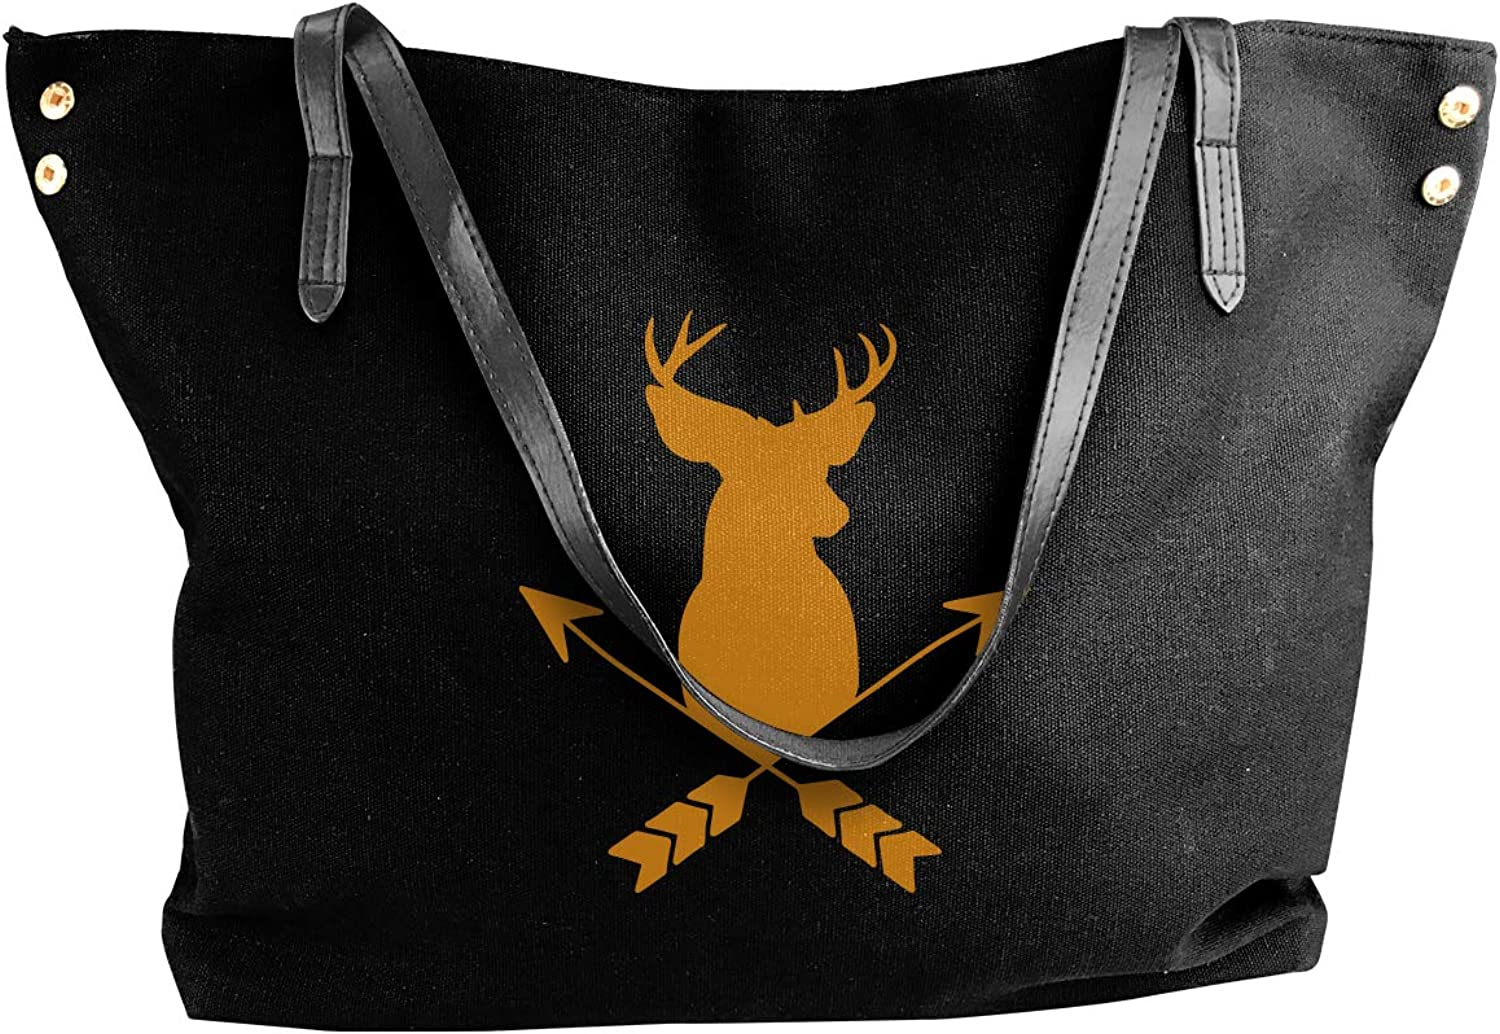 Deer Head With Arrows Women'S Leisure Canvas Sling Bag For Travel Handbag